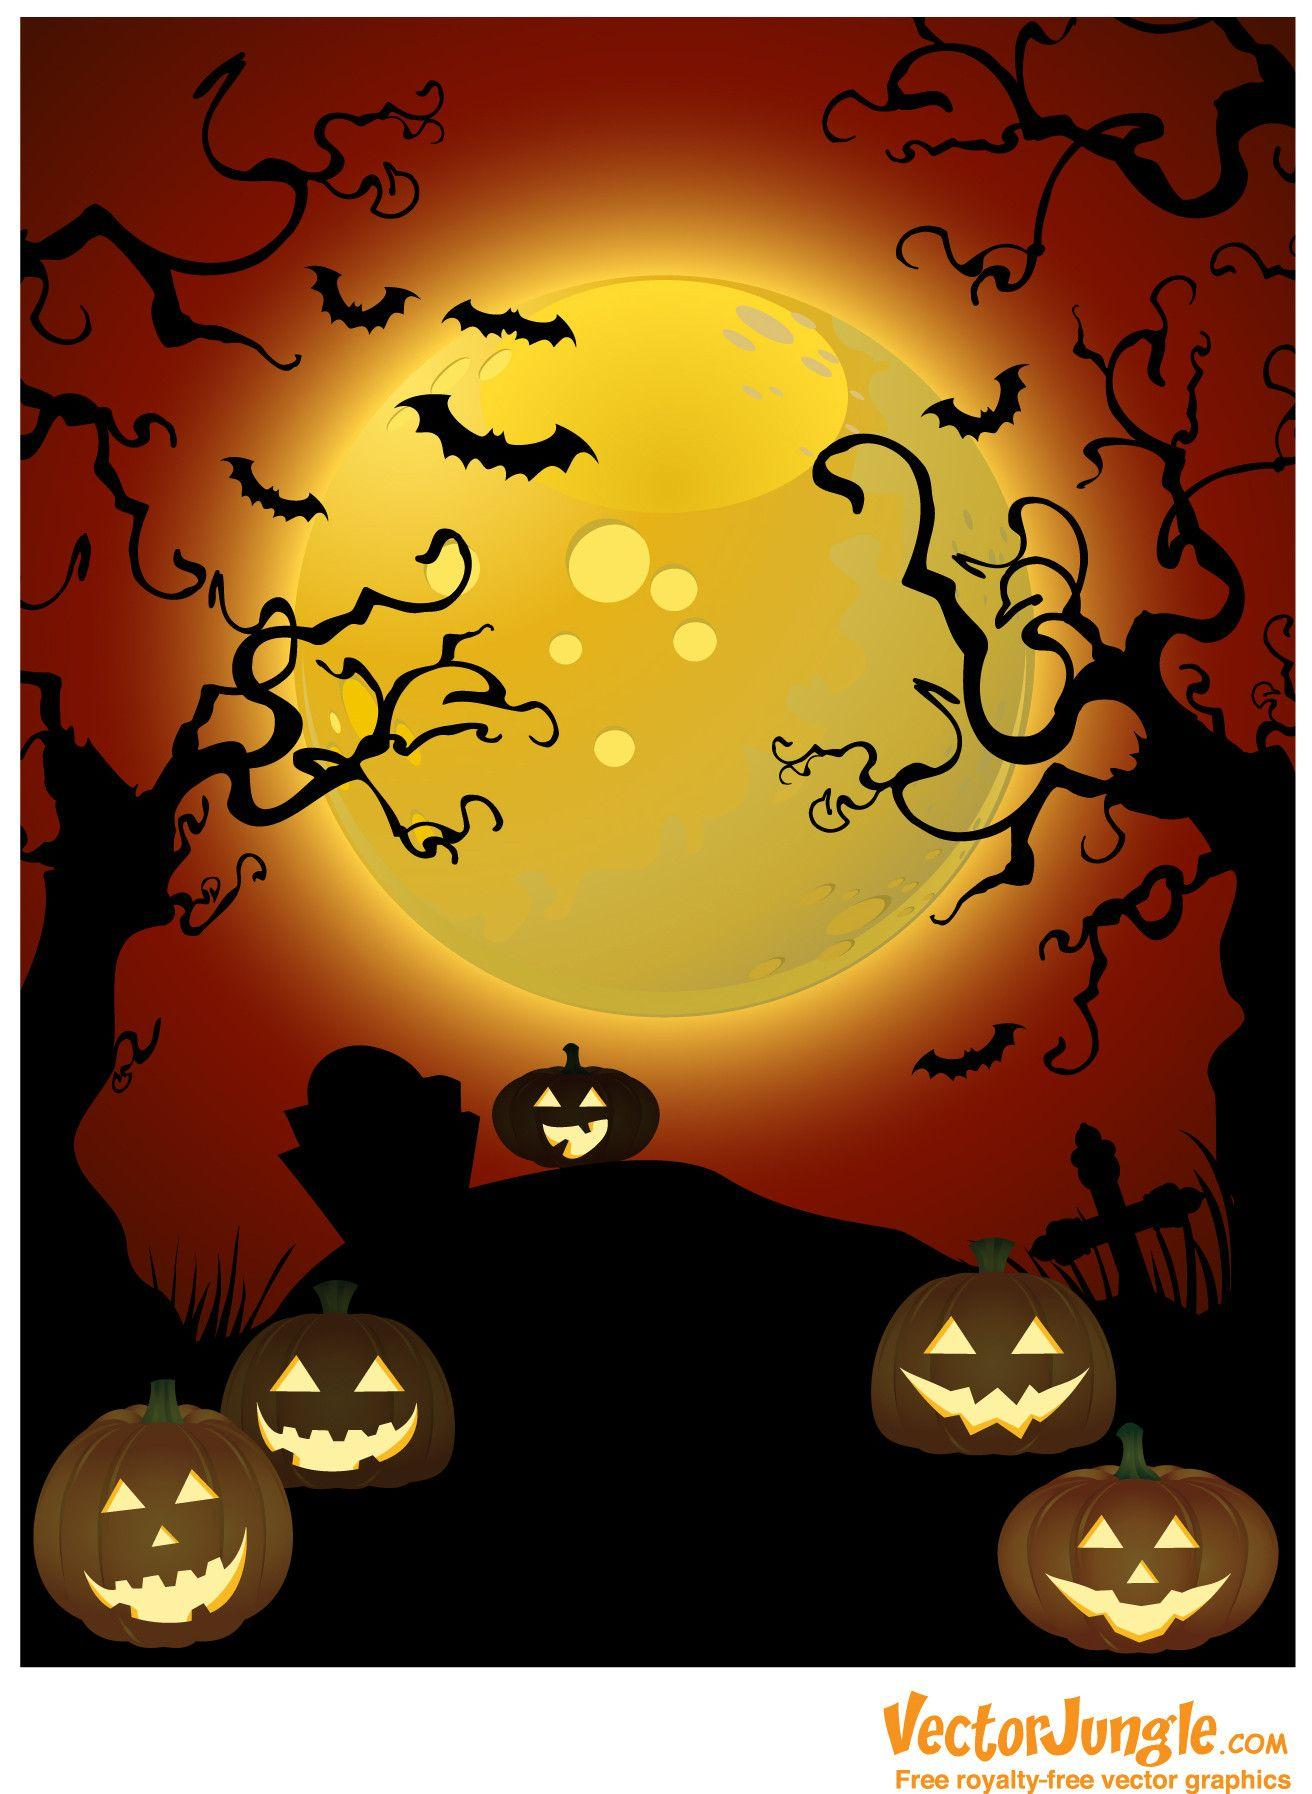 It's just a picture of Impertinent Printable Halloween Pictures